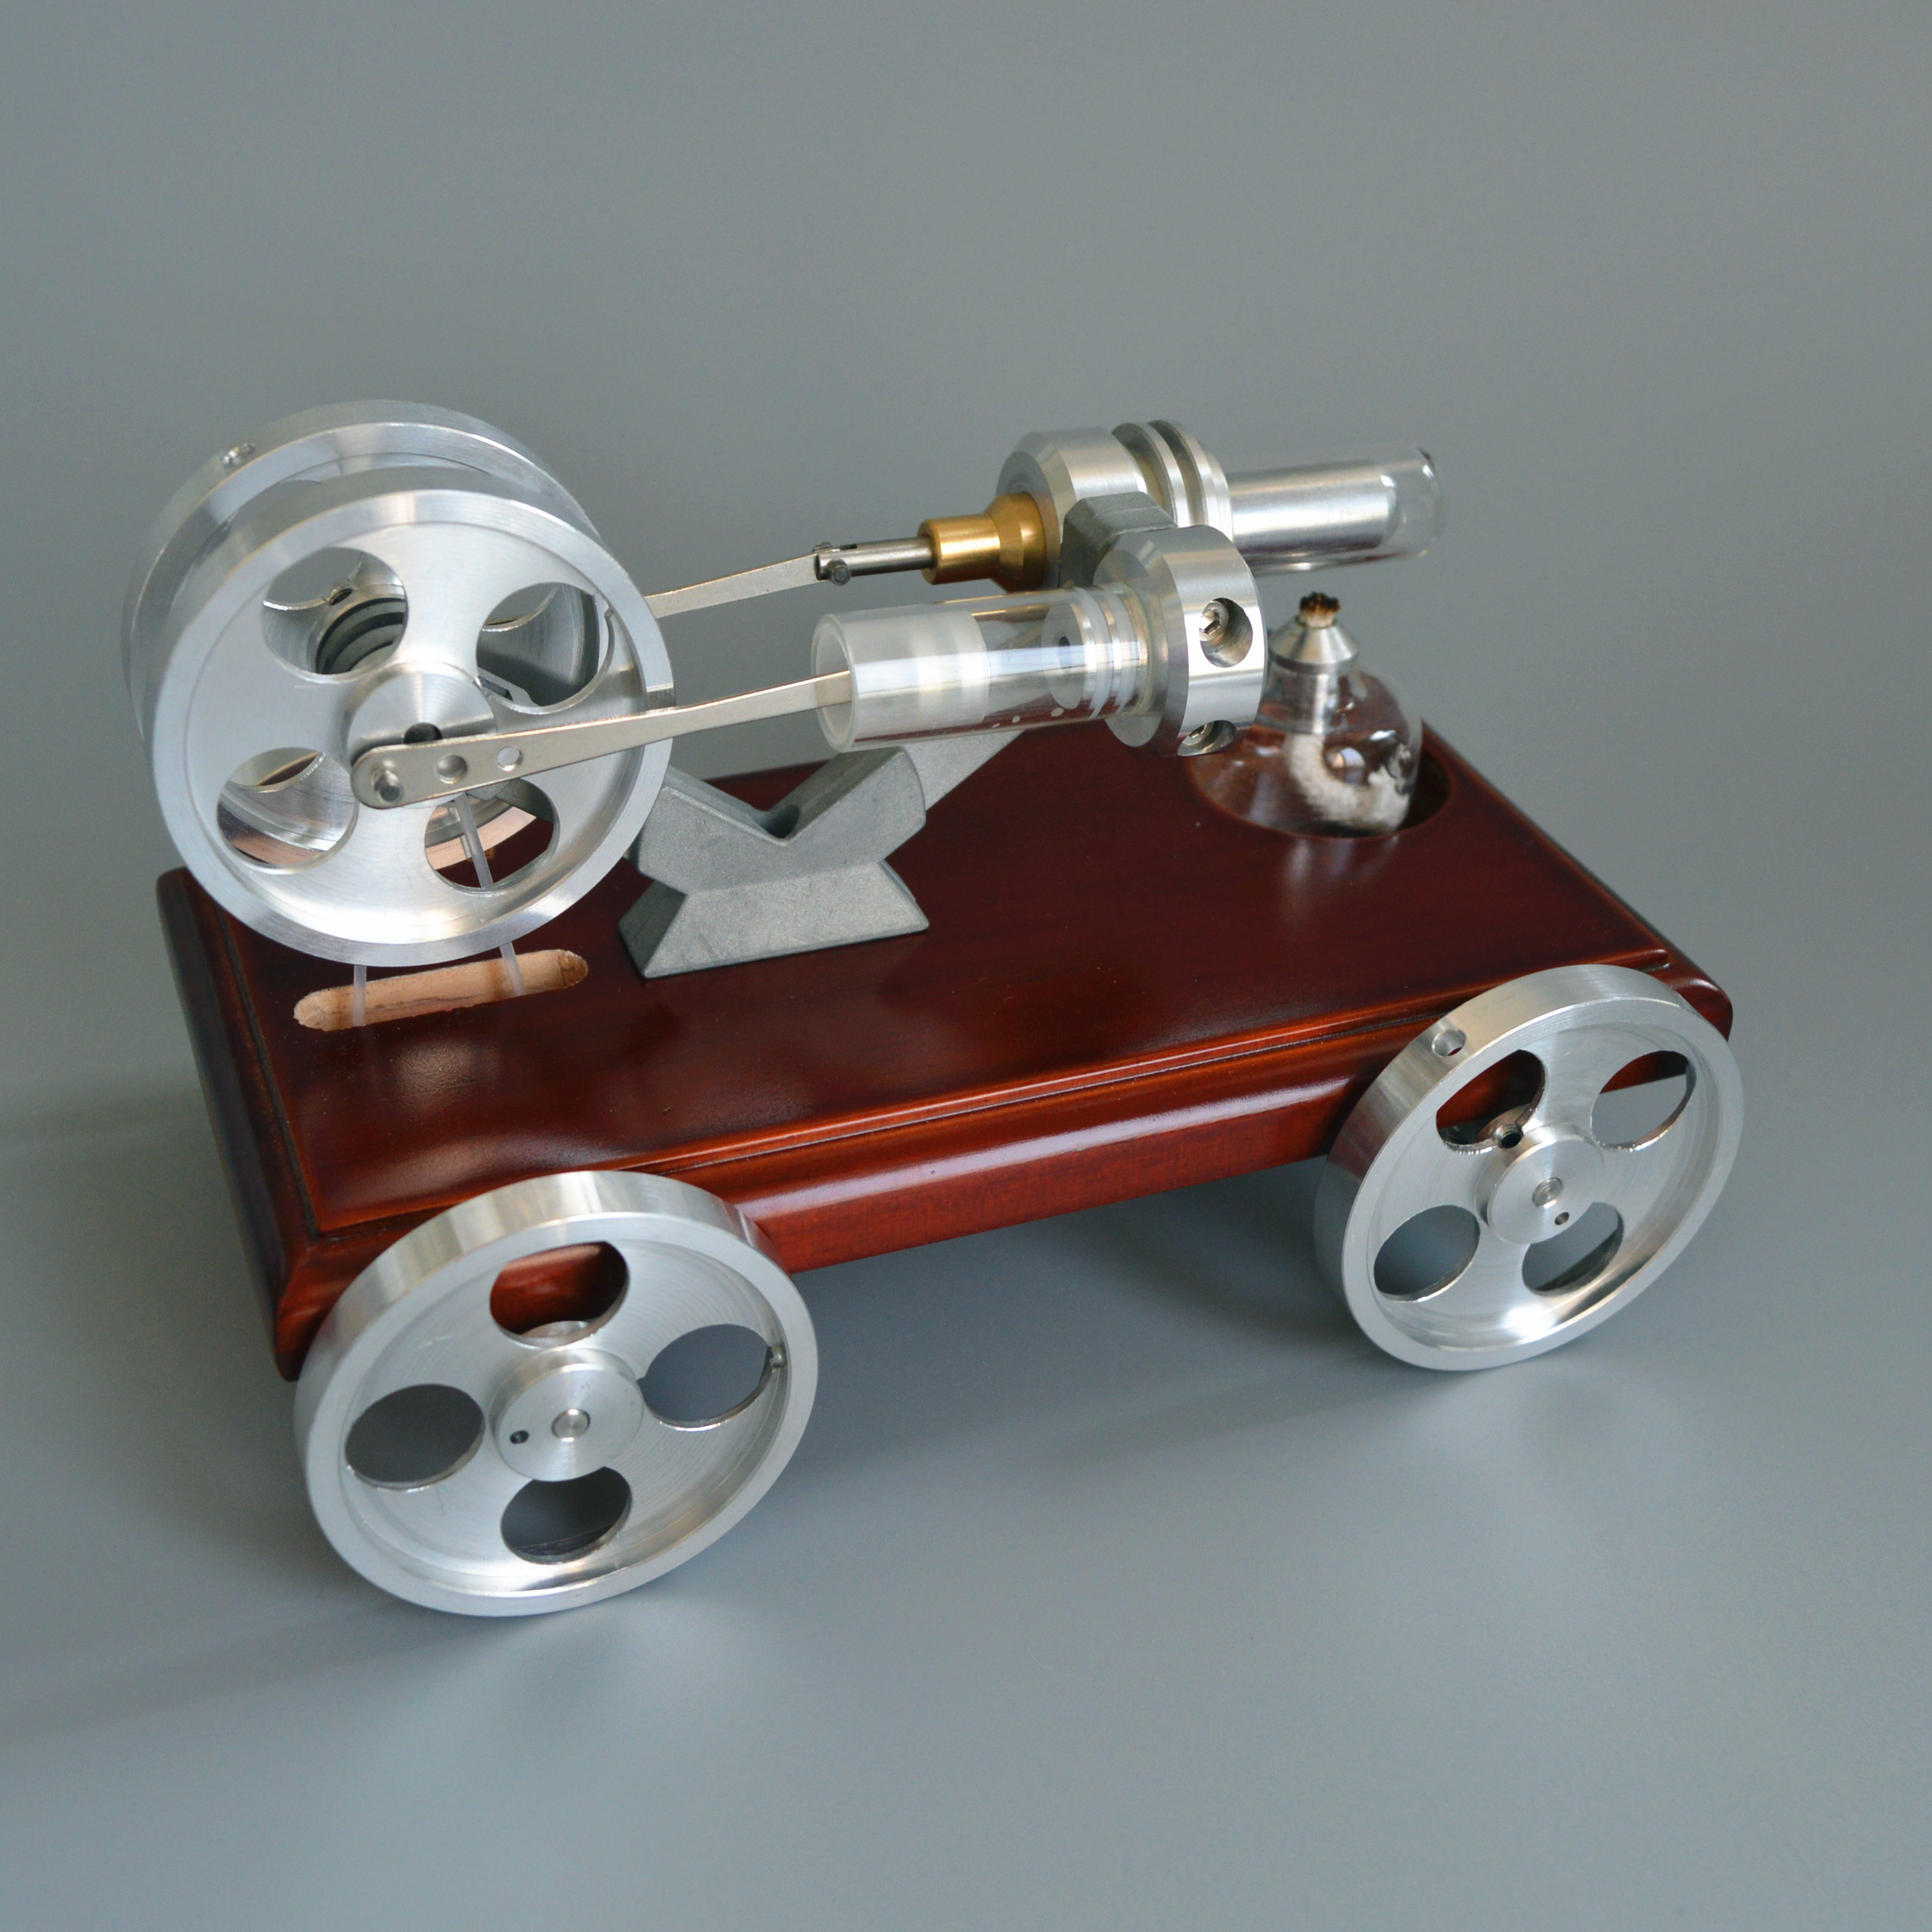 QX-XC-01 Stirling engine model toy car small scientific experiments qx fd 03 stirling engine model mini